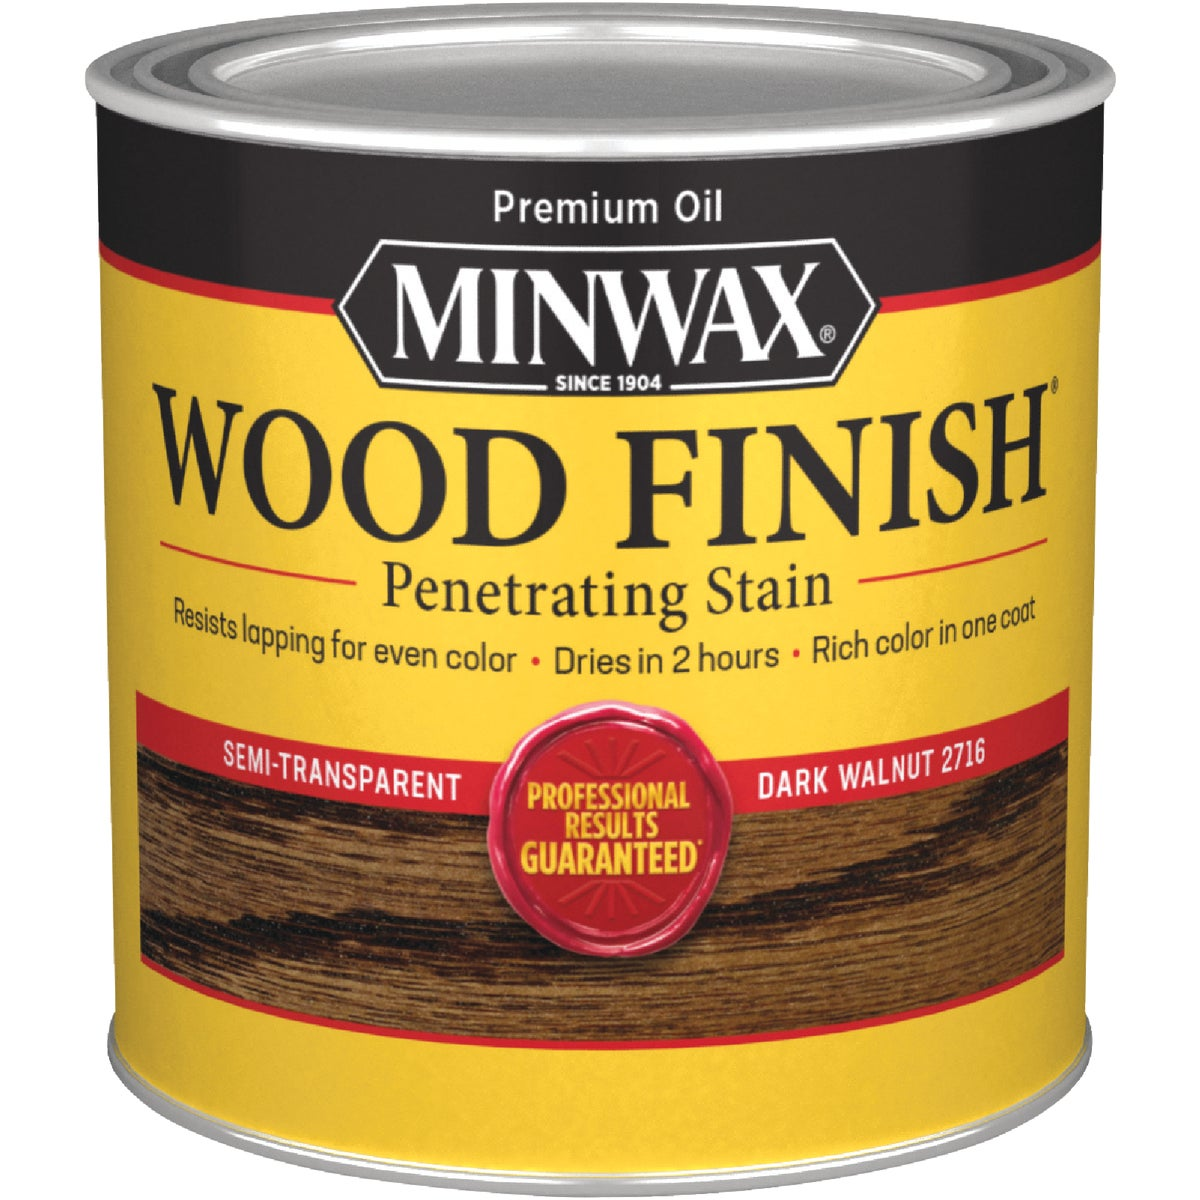 DARK WALNUT WOOD STAIN - 227164444 by Minwax Company